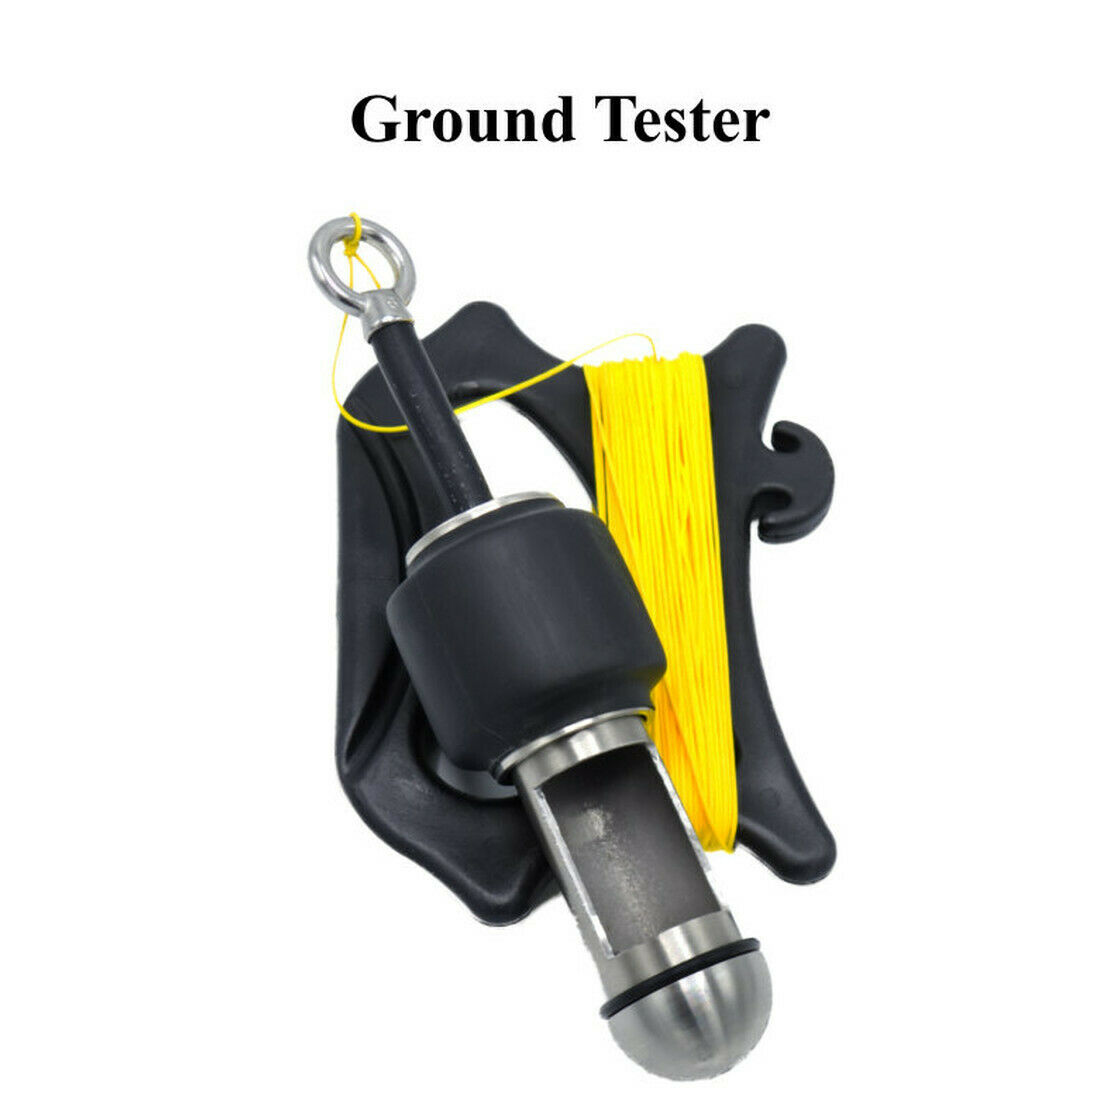 Poseidon Angelsport Ground Tester NEW Carp Fishing Lake Bed Feature Finder